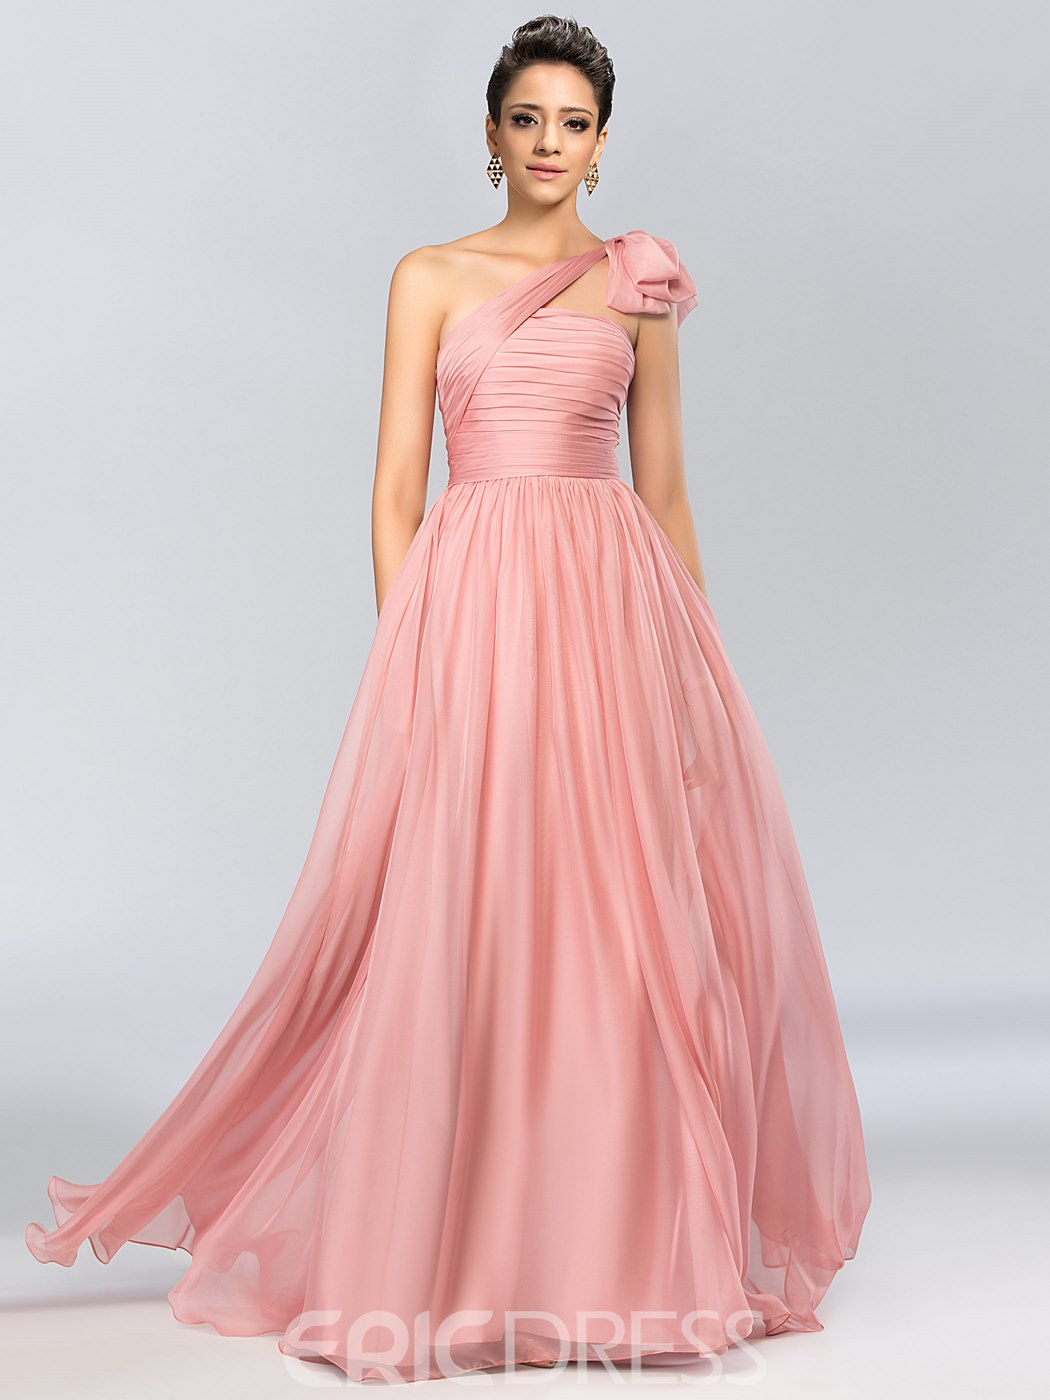 One-Shoulder Ruched Bowknot A-Line Evening Dress